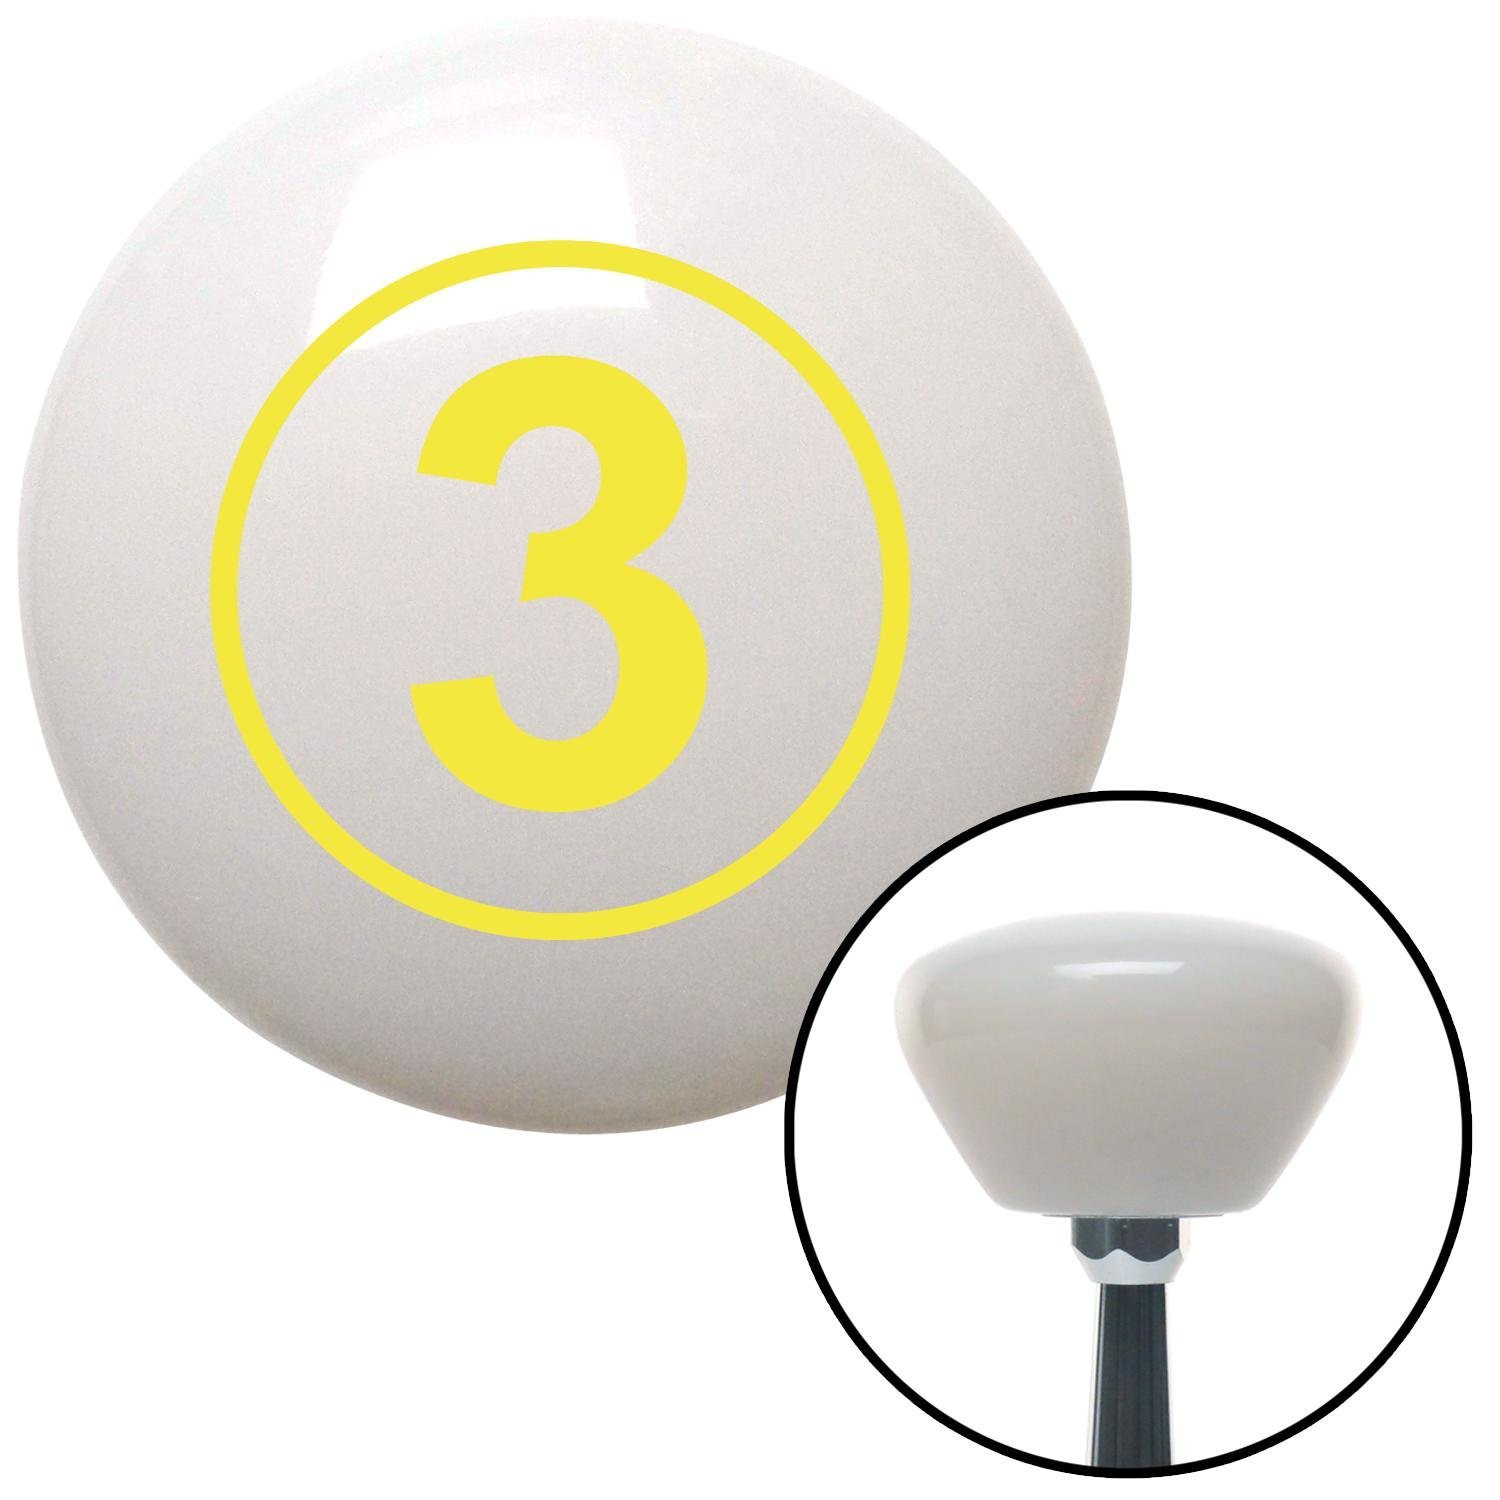 Yellow Ball #3 American Shifter 151812 White Retro Shift Knob with M16 x 1.5 Insert